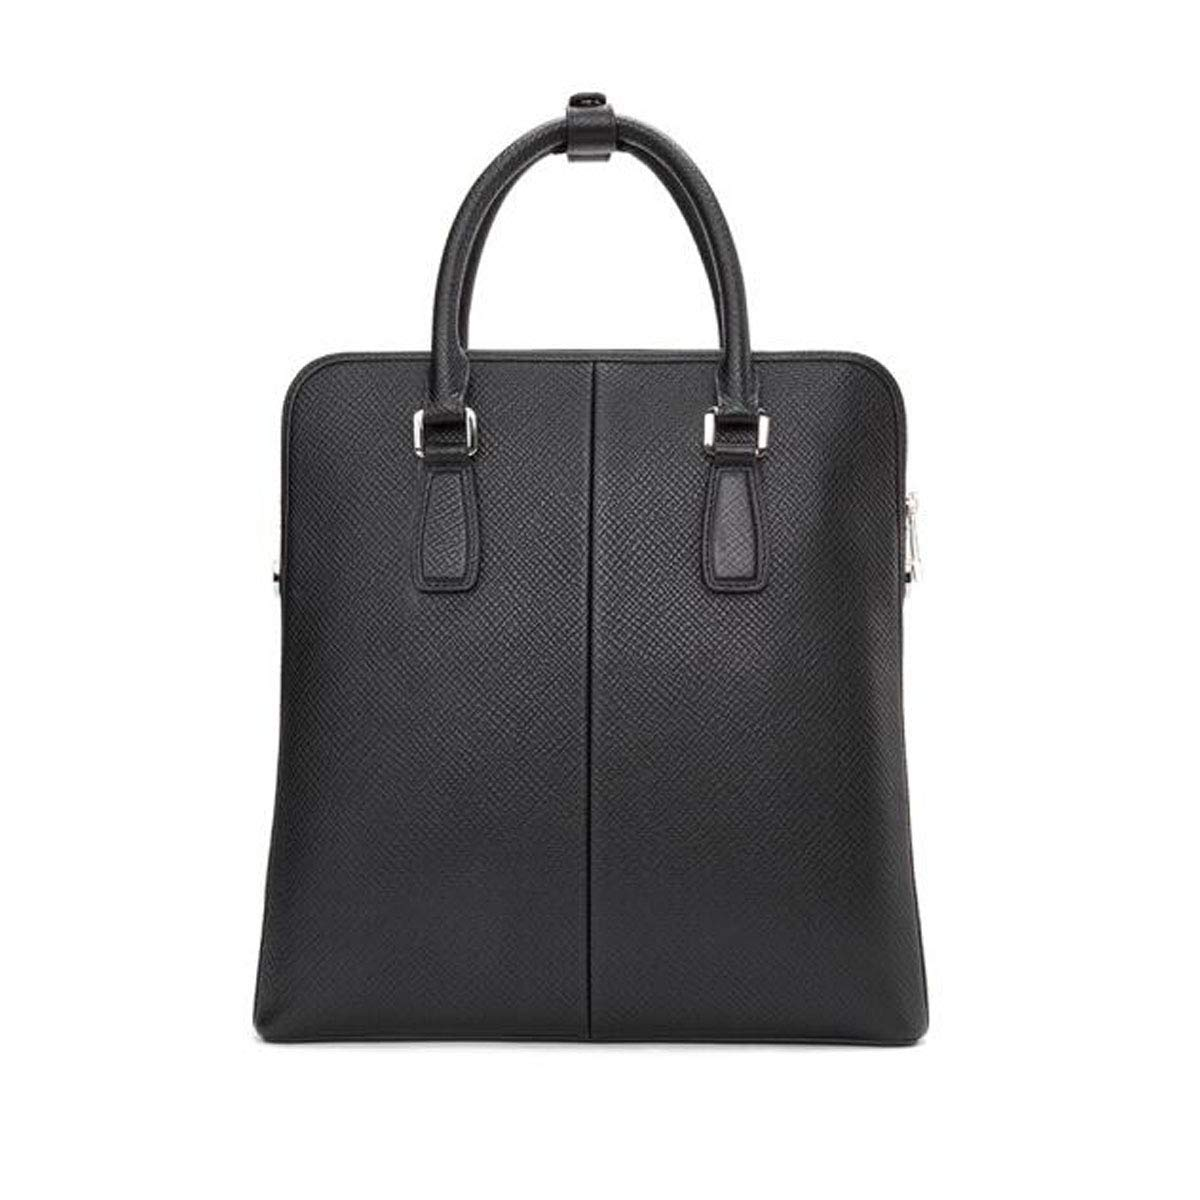 8haowenju Briefcase New Leather Business Tote Black Size; 29631cm Suitable for Travel Color : Black Business Travel Mens Leather Large Capacity Computer Bag